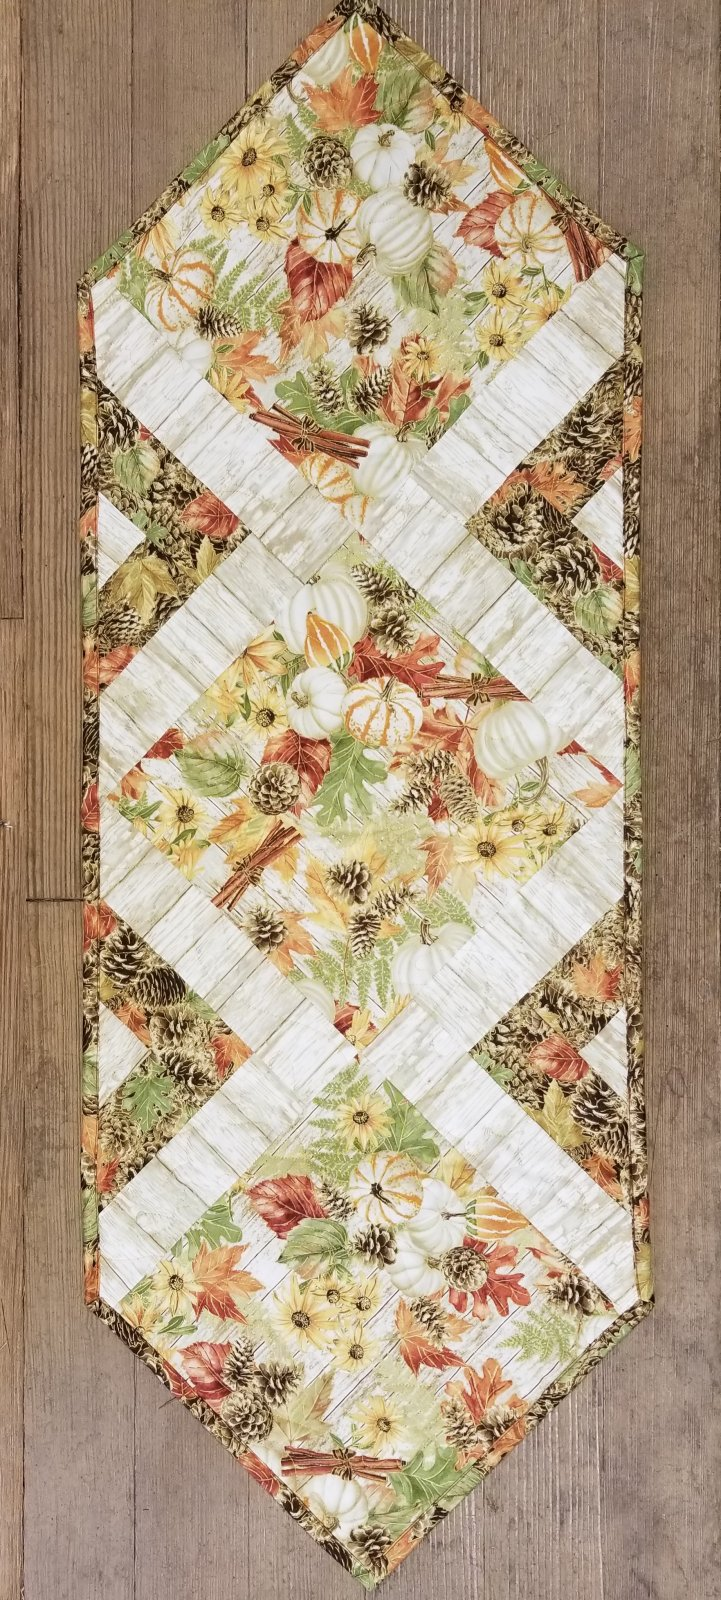 Pumpkin & Pinecones In the Middle Quilt Kit